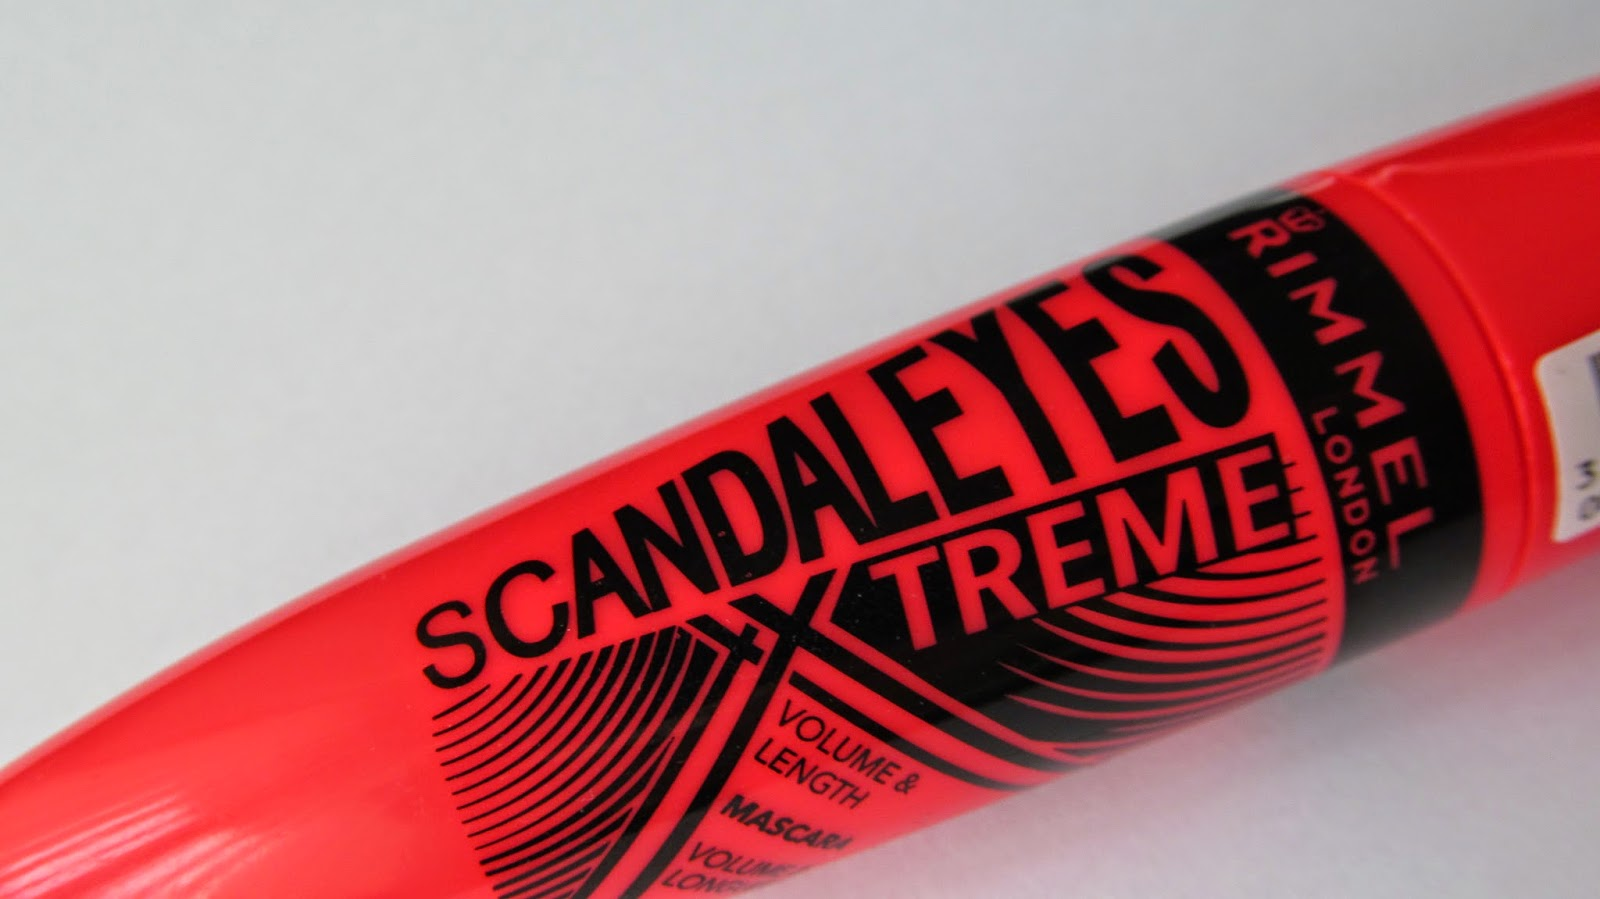 Scandaleyes Xxtreme Mascara Review